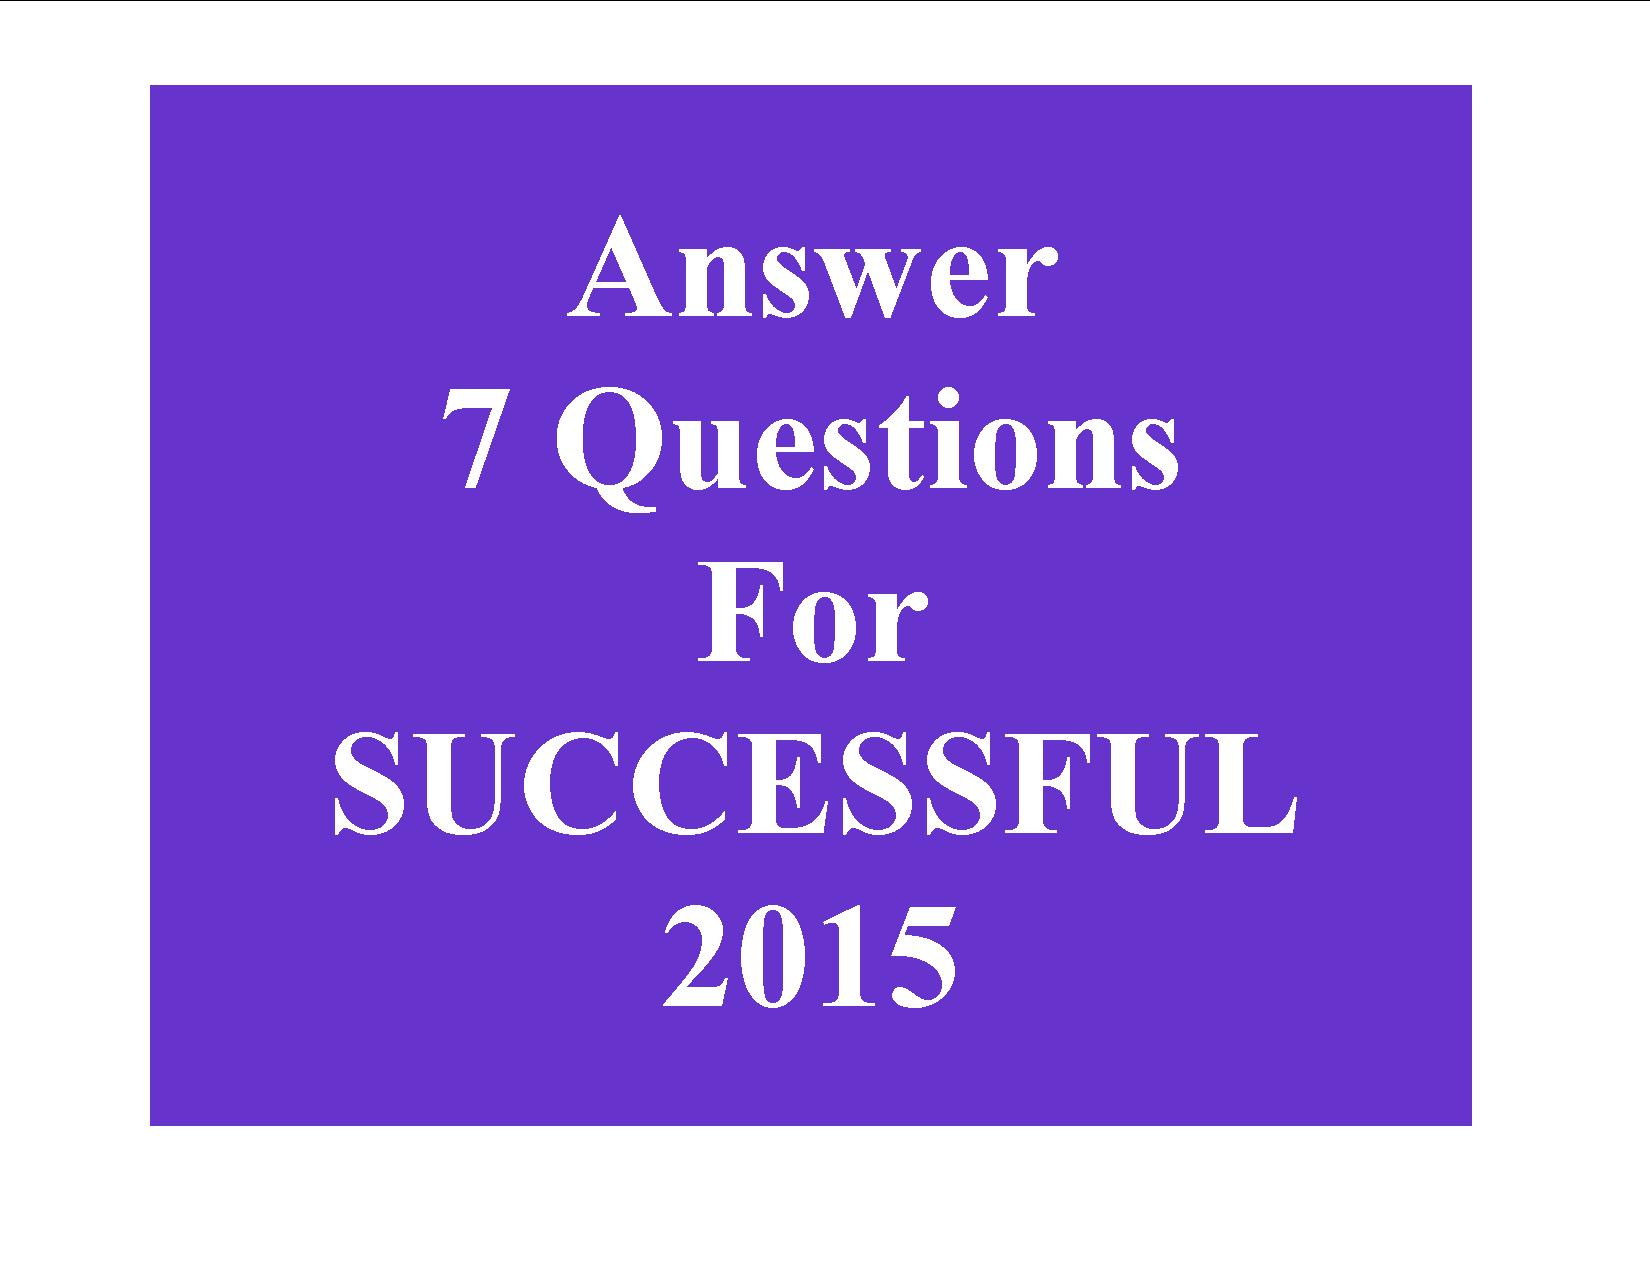 7 questions for a successful year